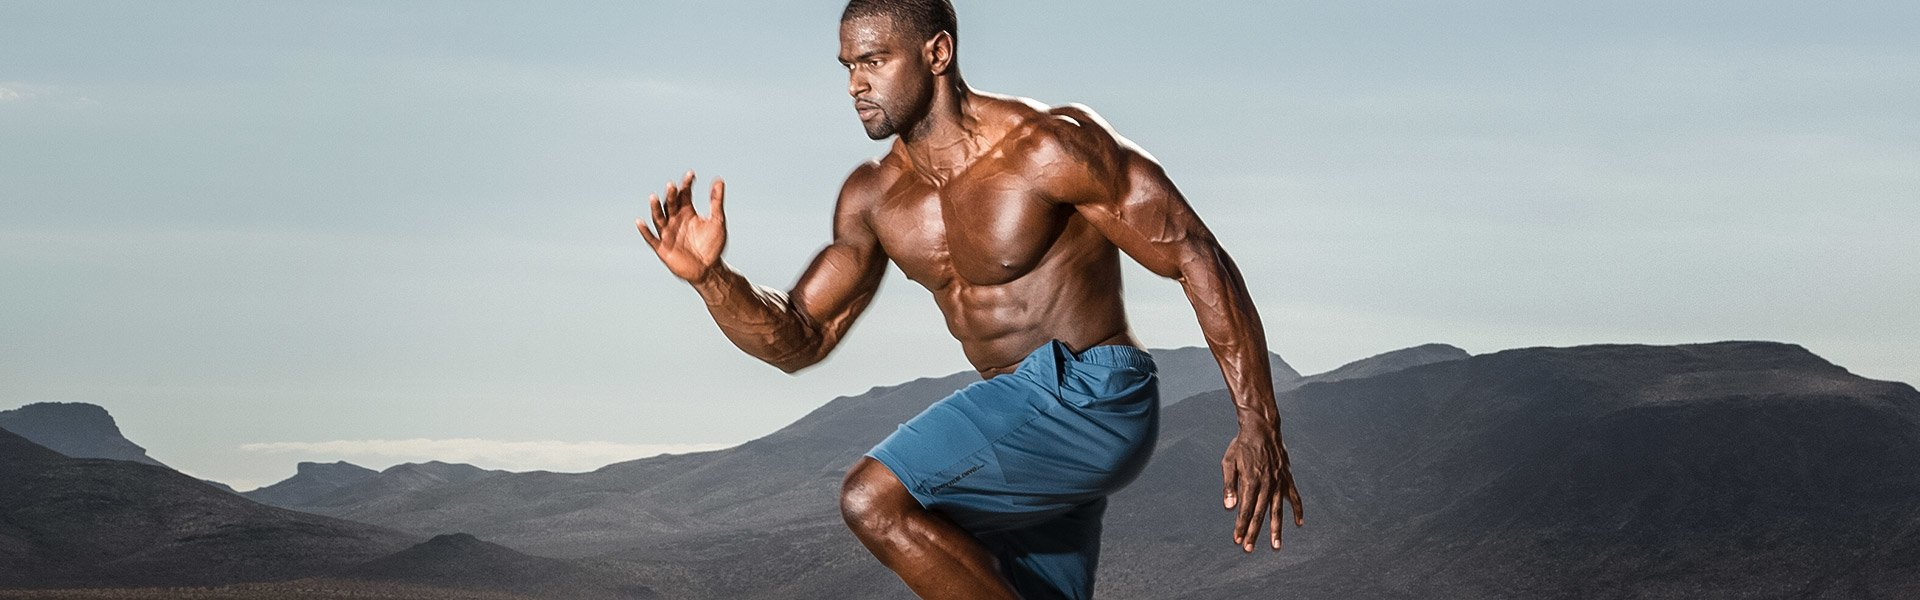 how to build muscle effectively